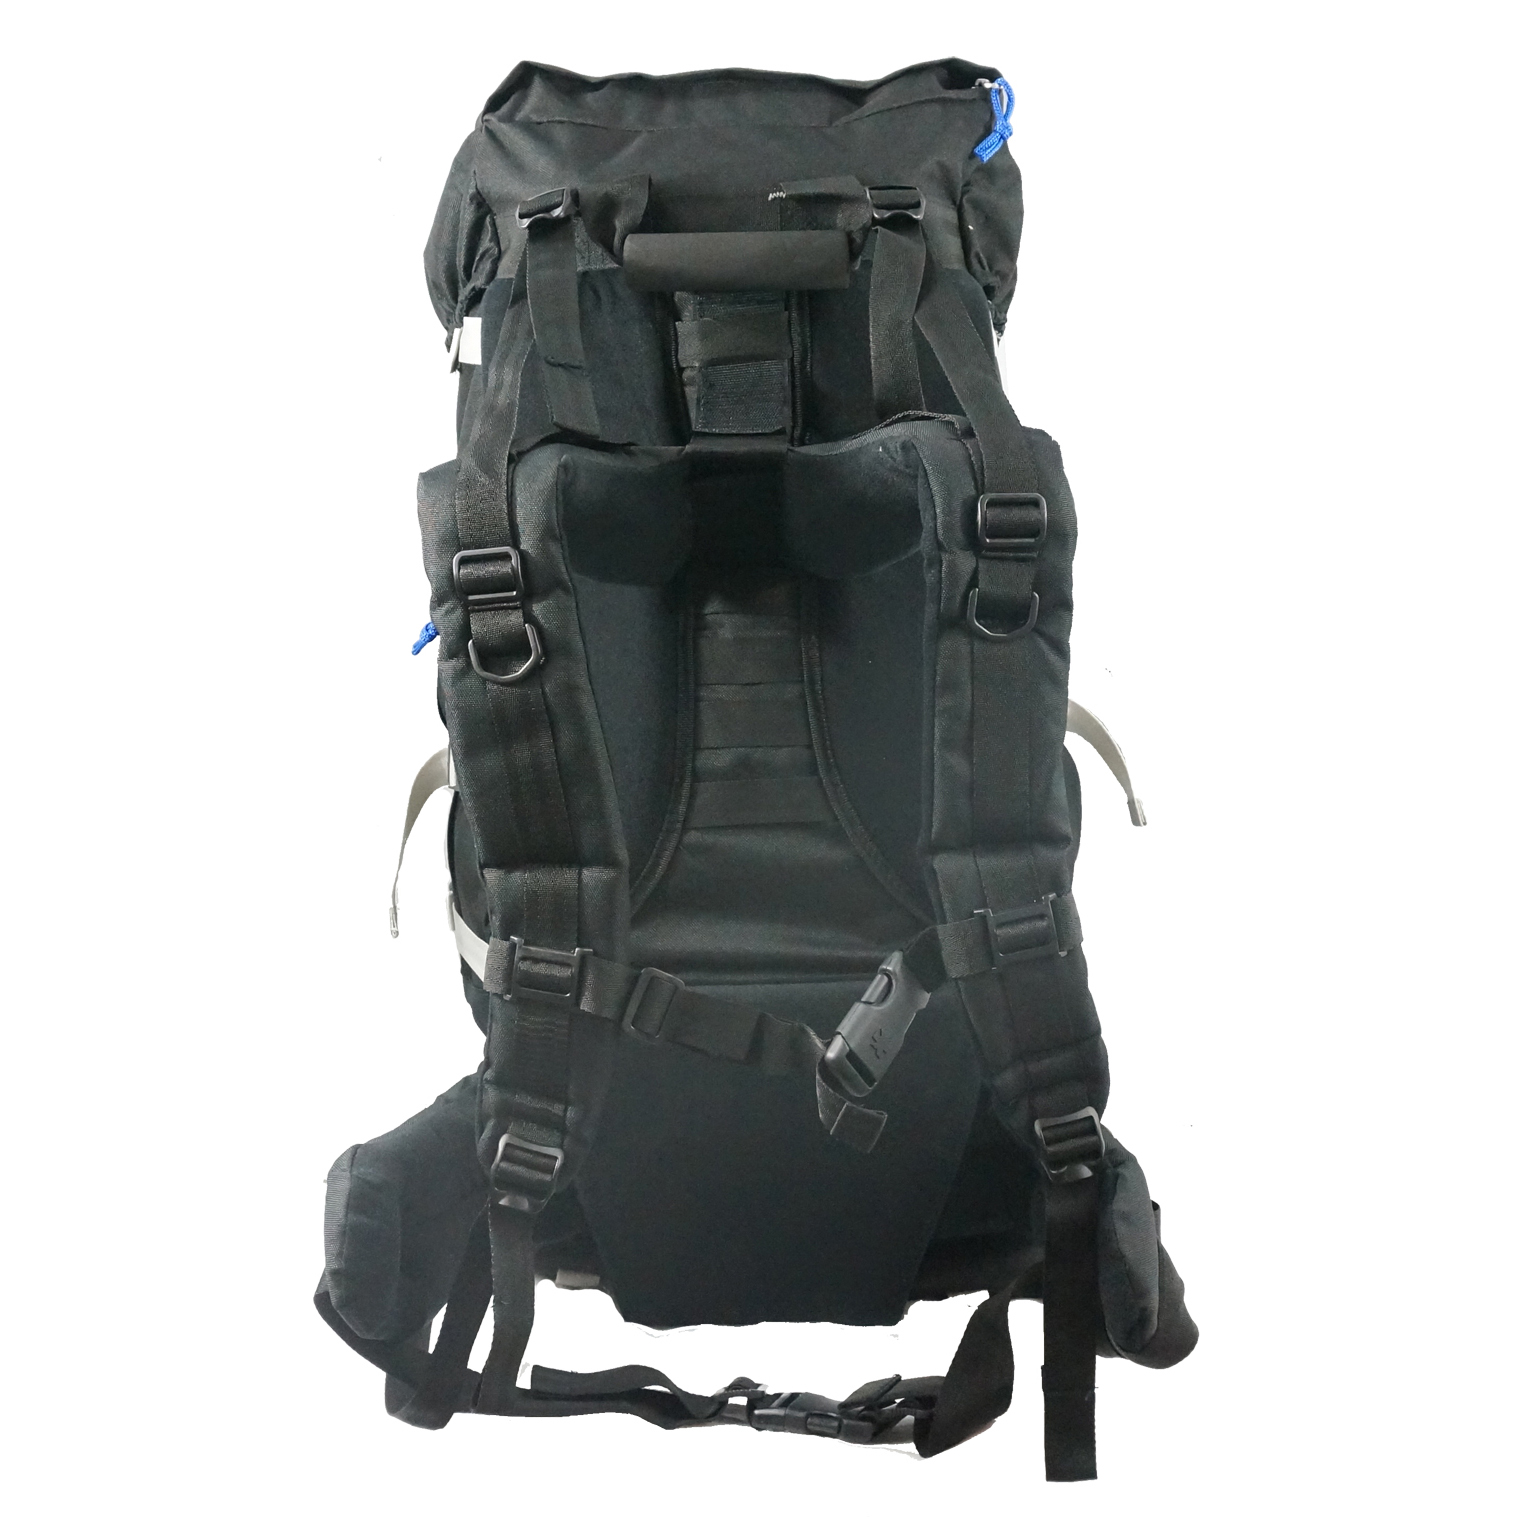 K-Cliffs Hiking Backpack Large Scout Camping Backpack Outdoor Travel Bag w Rain Cover Green by K-Cliffs